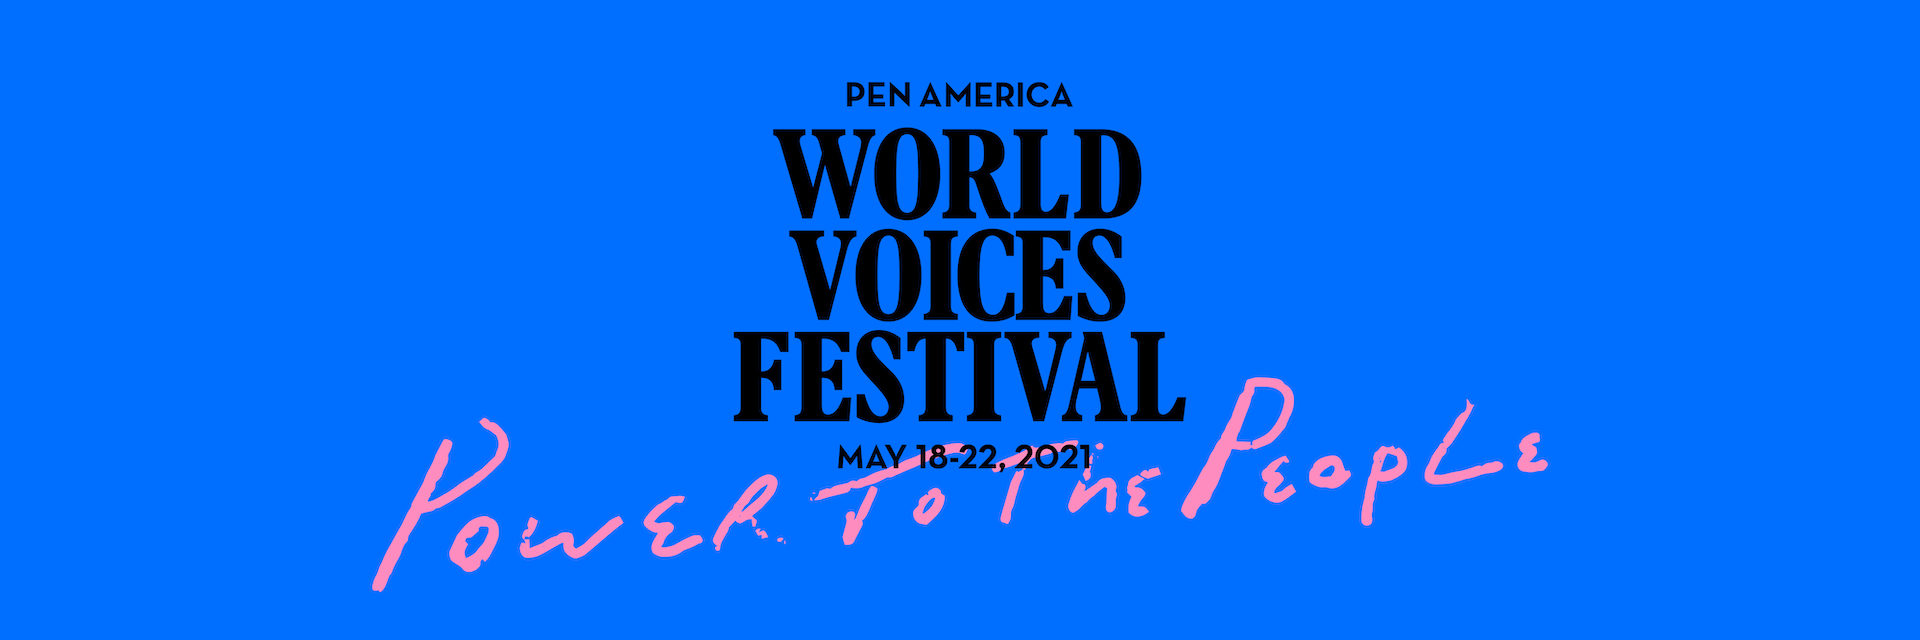 2021 World Voices Festival Hero Image